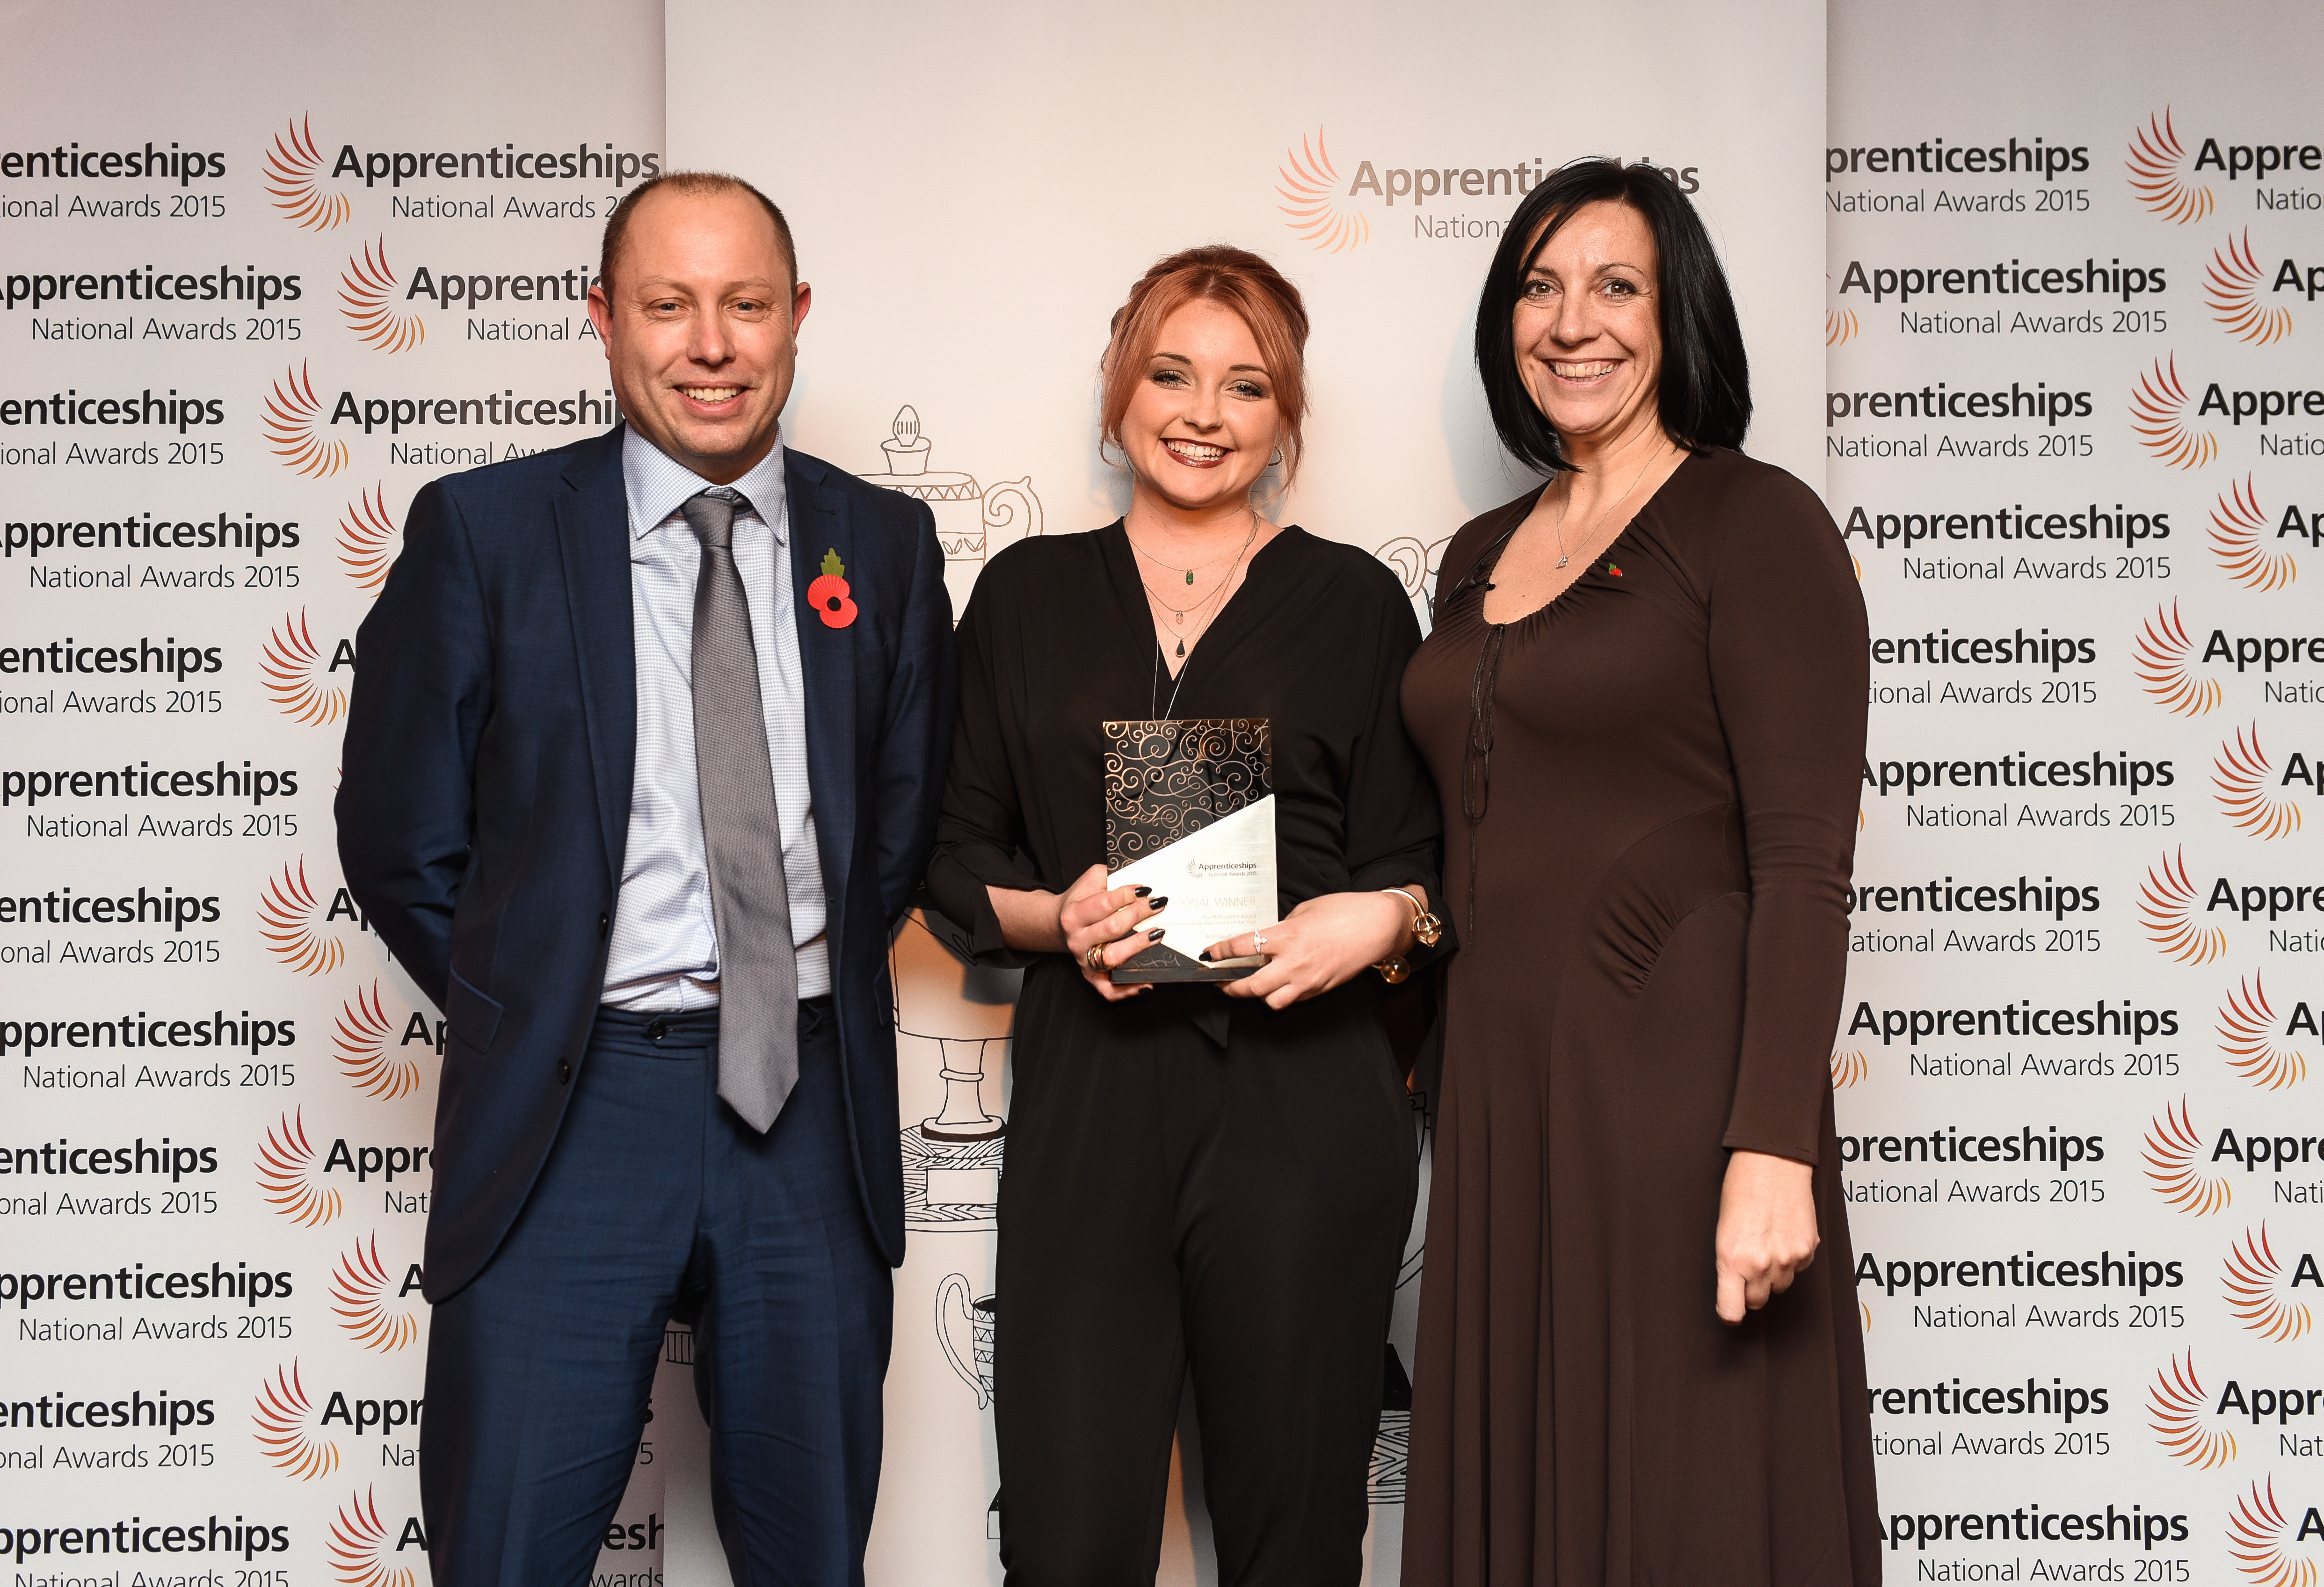 From left: Paul Skitt, assistant principal to head employer engagement at Cambridge Regional College, McDonald's award for Intermediate Apprentice of the Year winner for the East of England, Ashleigh Everett, and Karen Kelly, head of area relations team at the Skills Funding Agency